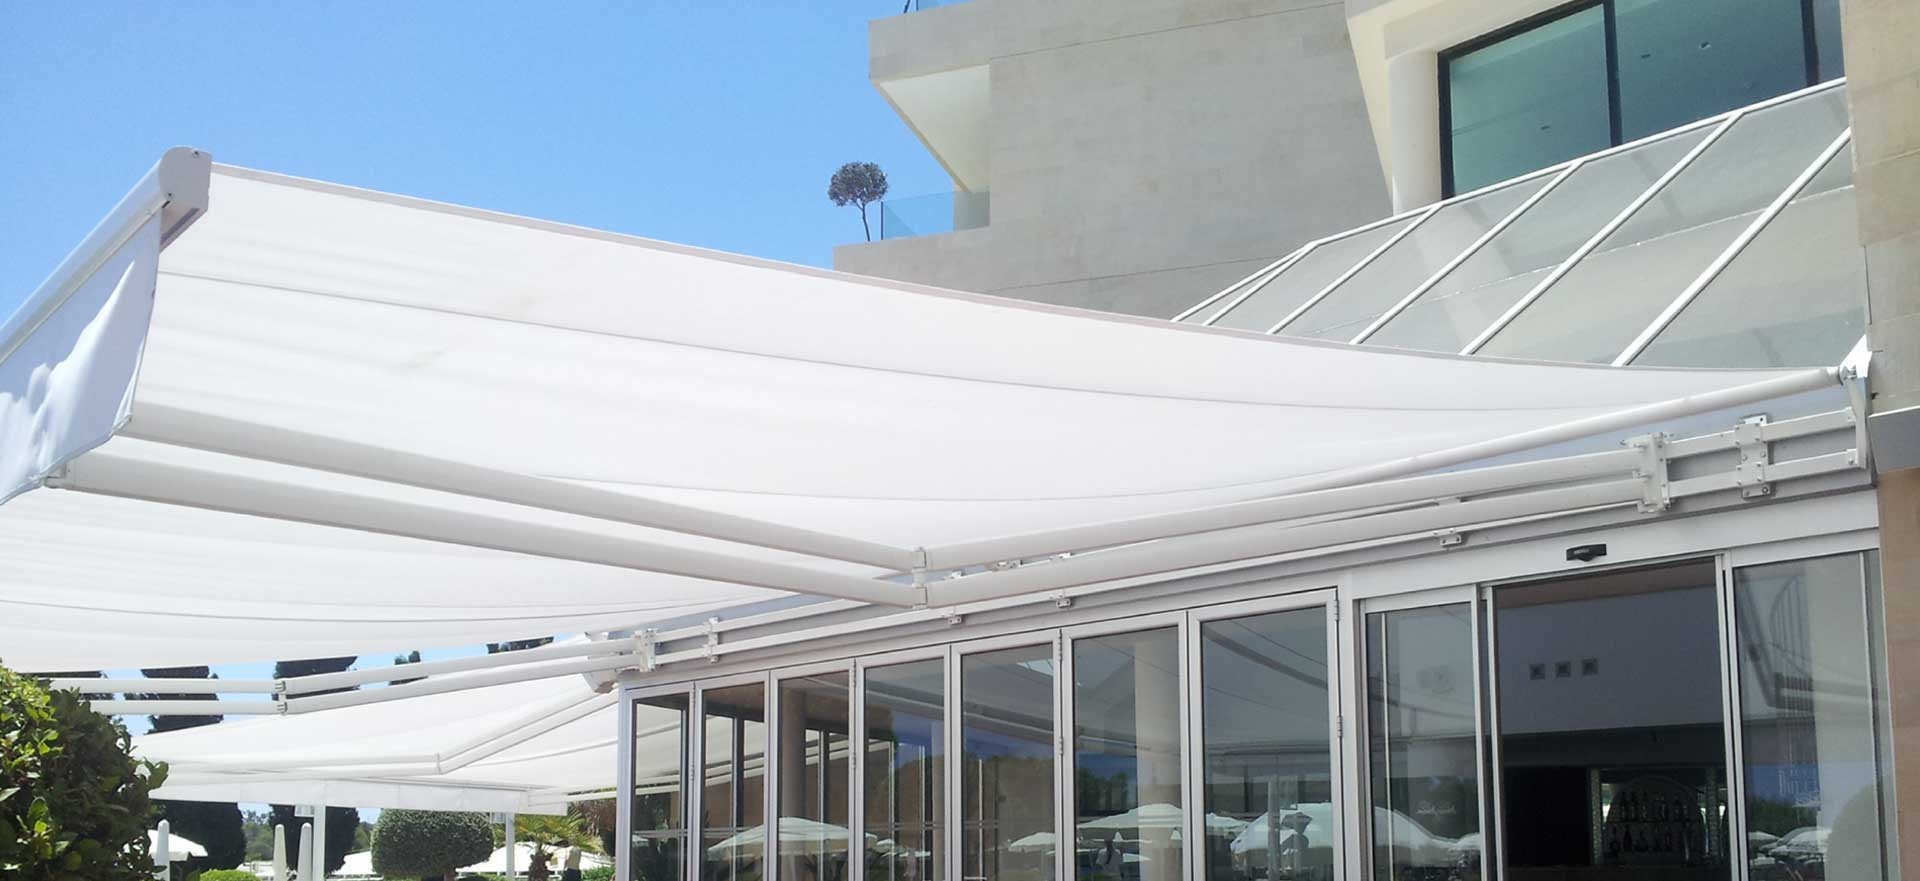 monoblock awnings with bars sold by AuventRoyal located in Montreal, Quebec, Canada